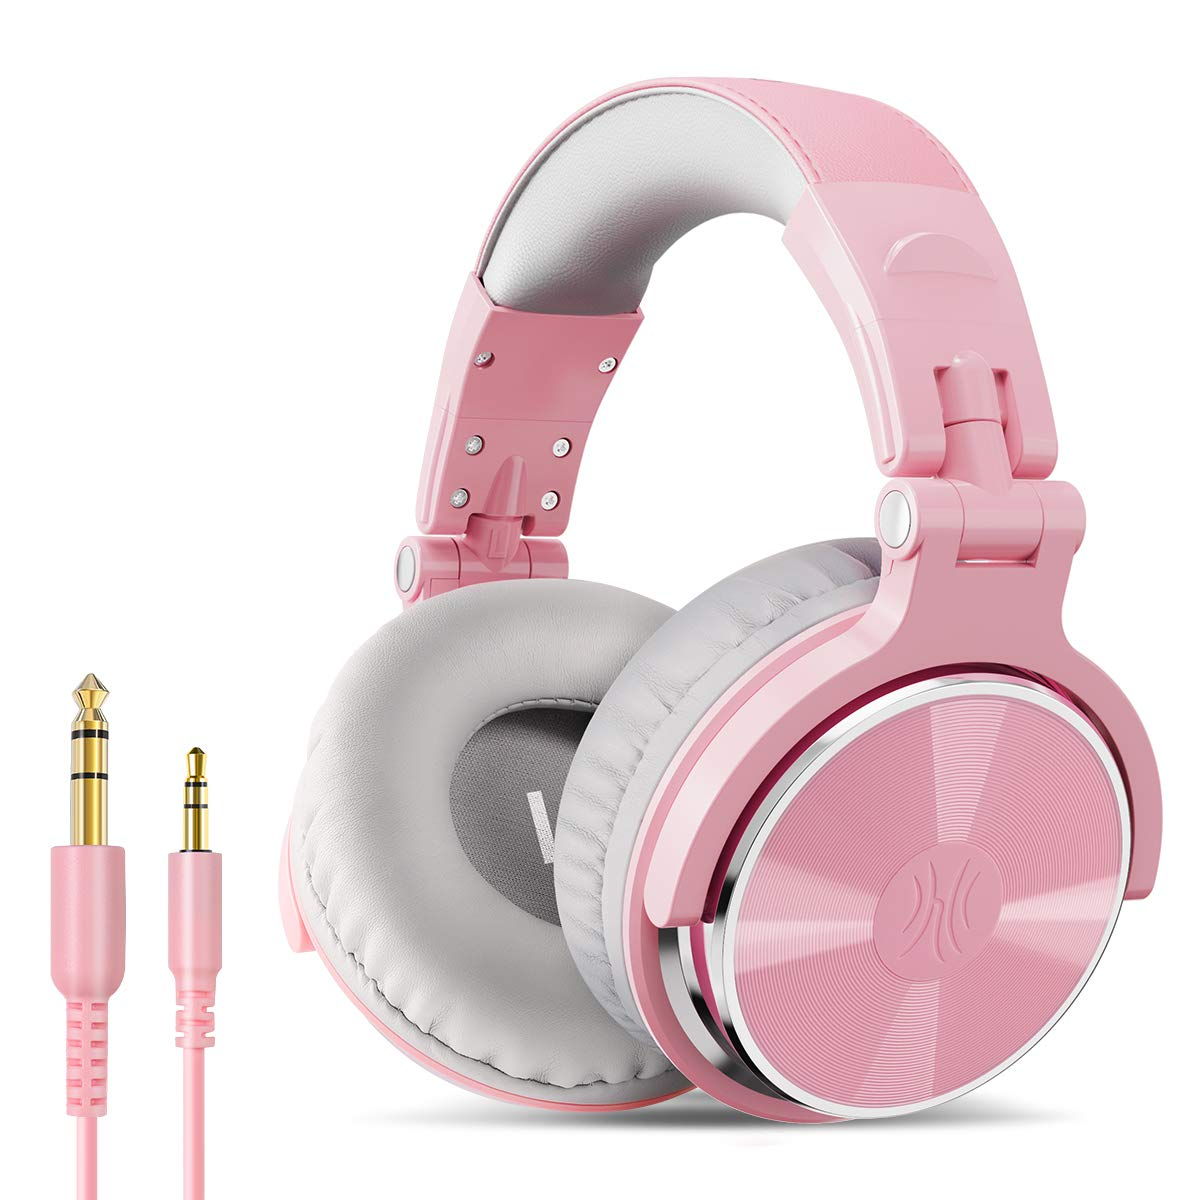 OneOdio Over Ear Headphone, Wired Bass Headsets with 50mm Driver, Foldable Lightweight Headphones with Shareport and Mic for Recording Monitoring Mixing Podcast Guitar PC TV (Light Pink)